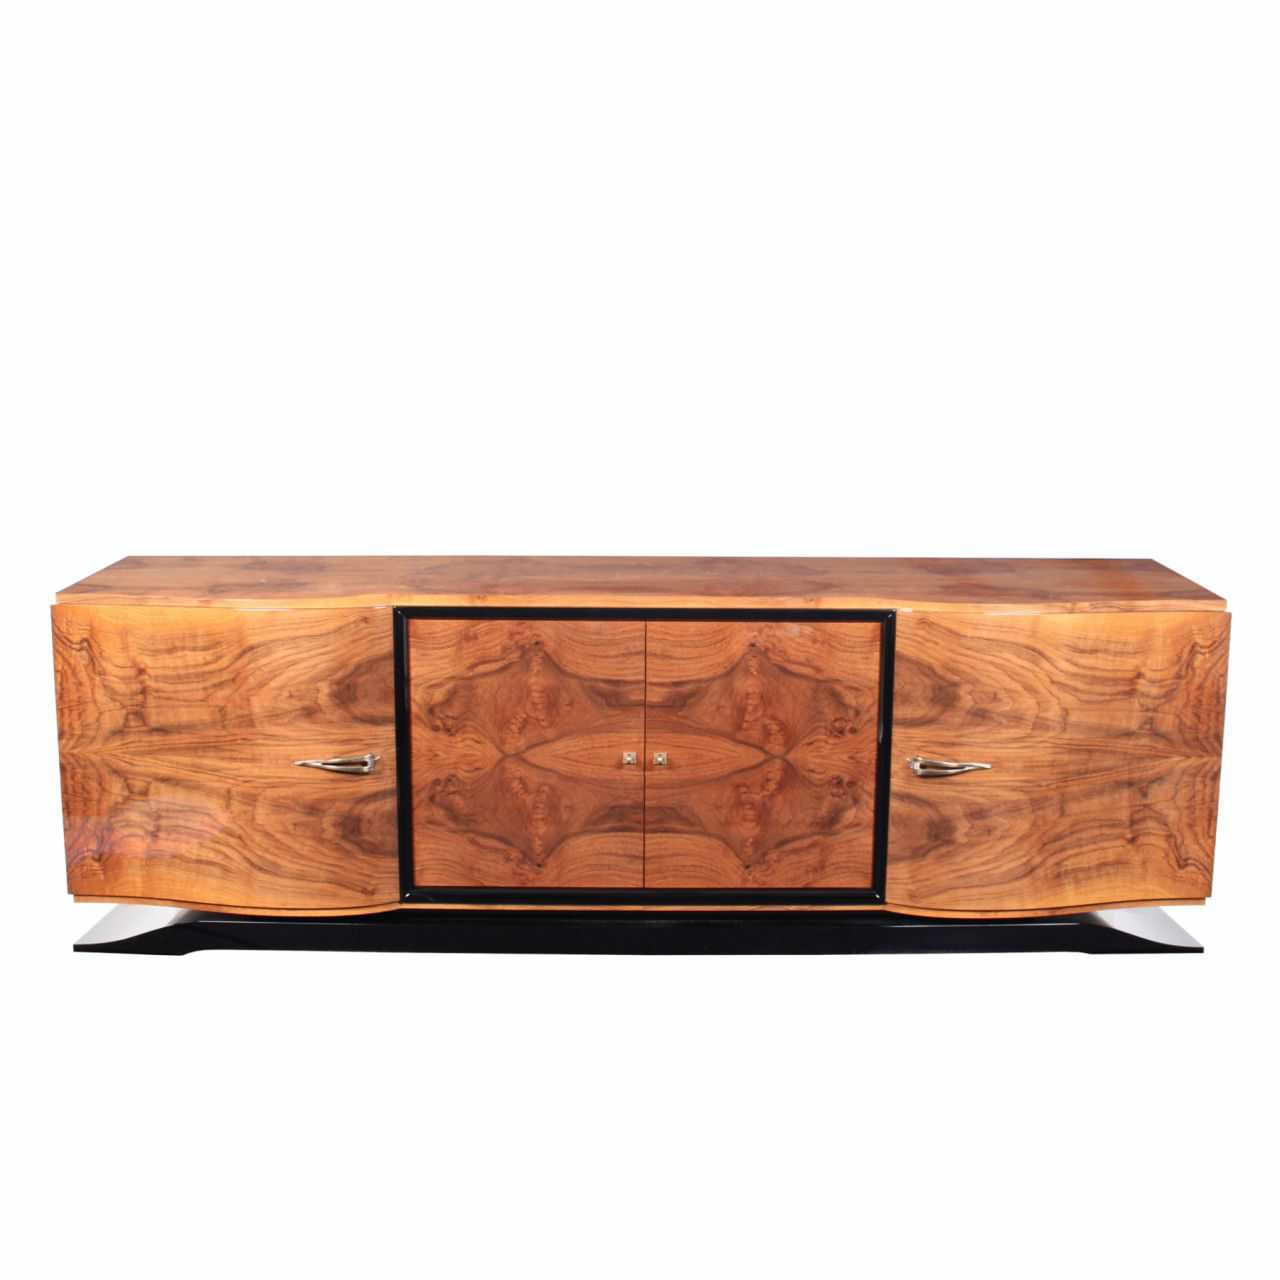 art deco sideboard rosewood glossy lacquered wood sb001 cygal art deco gmbh co art deco office credenza